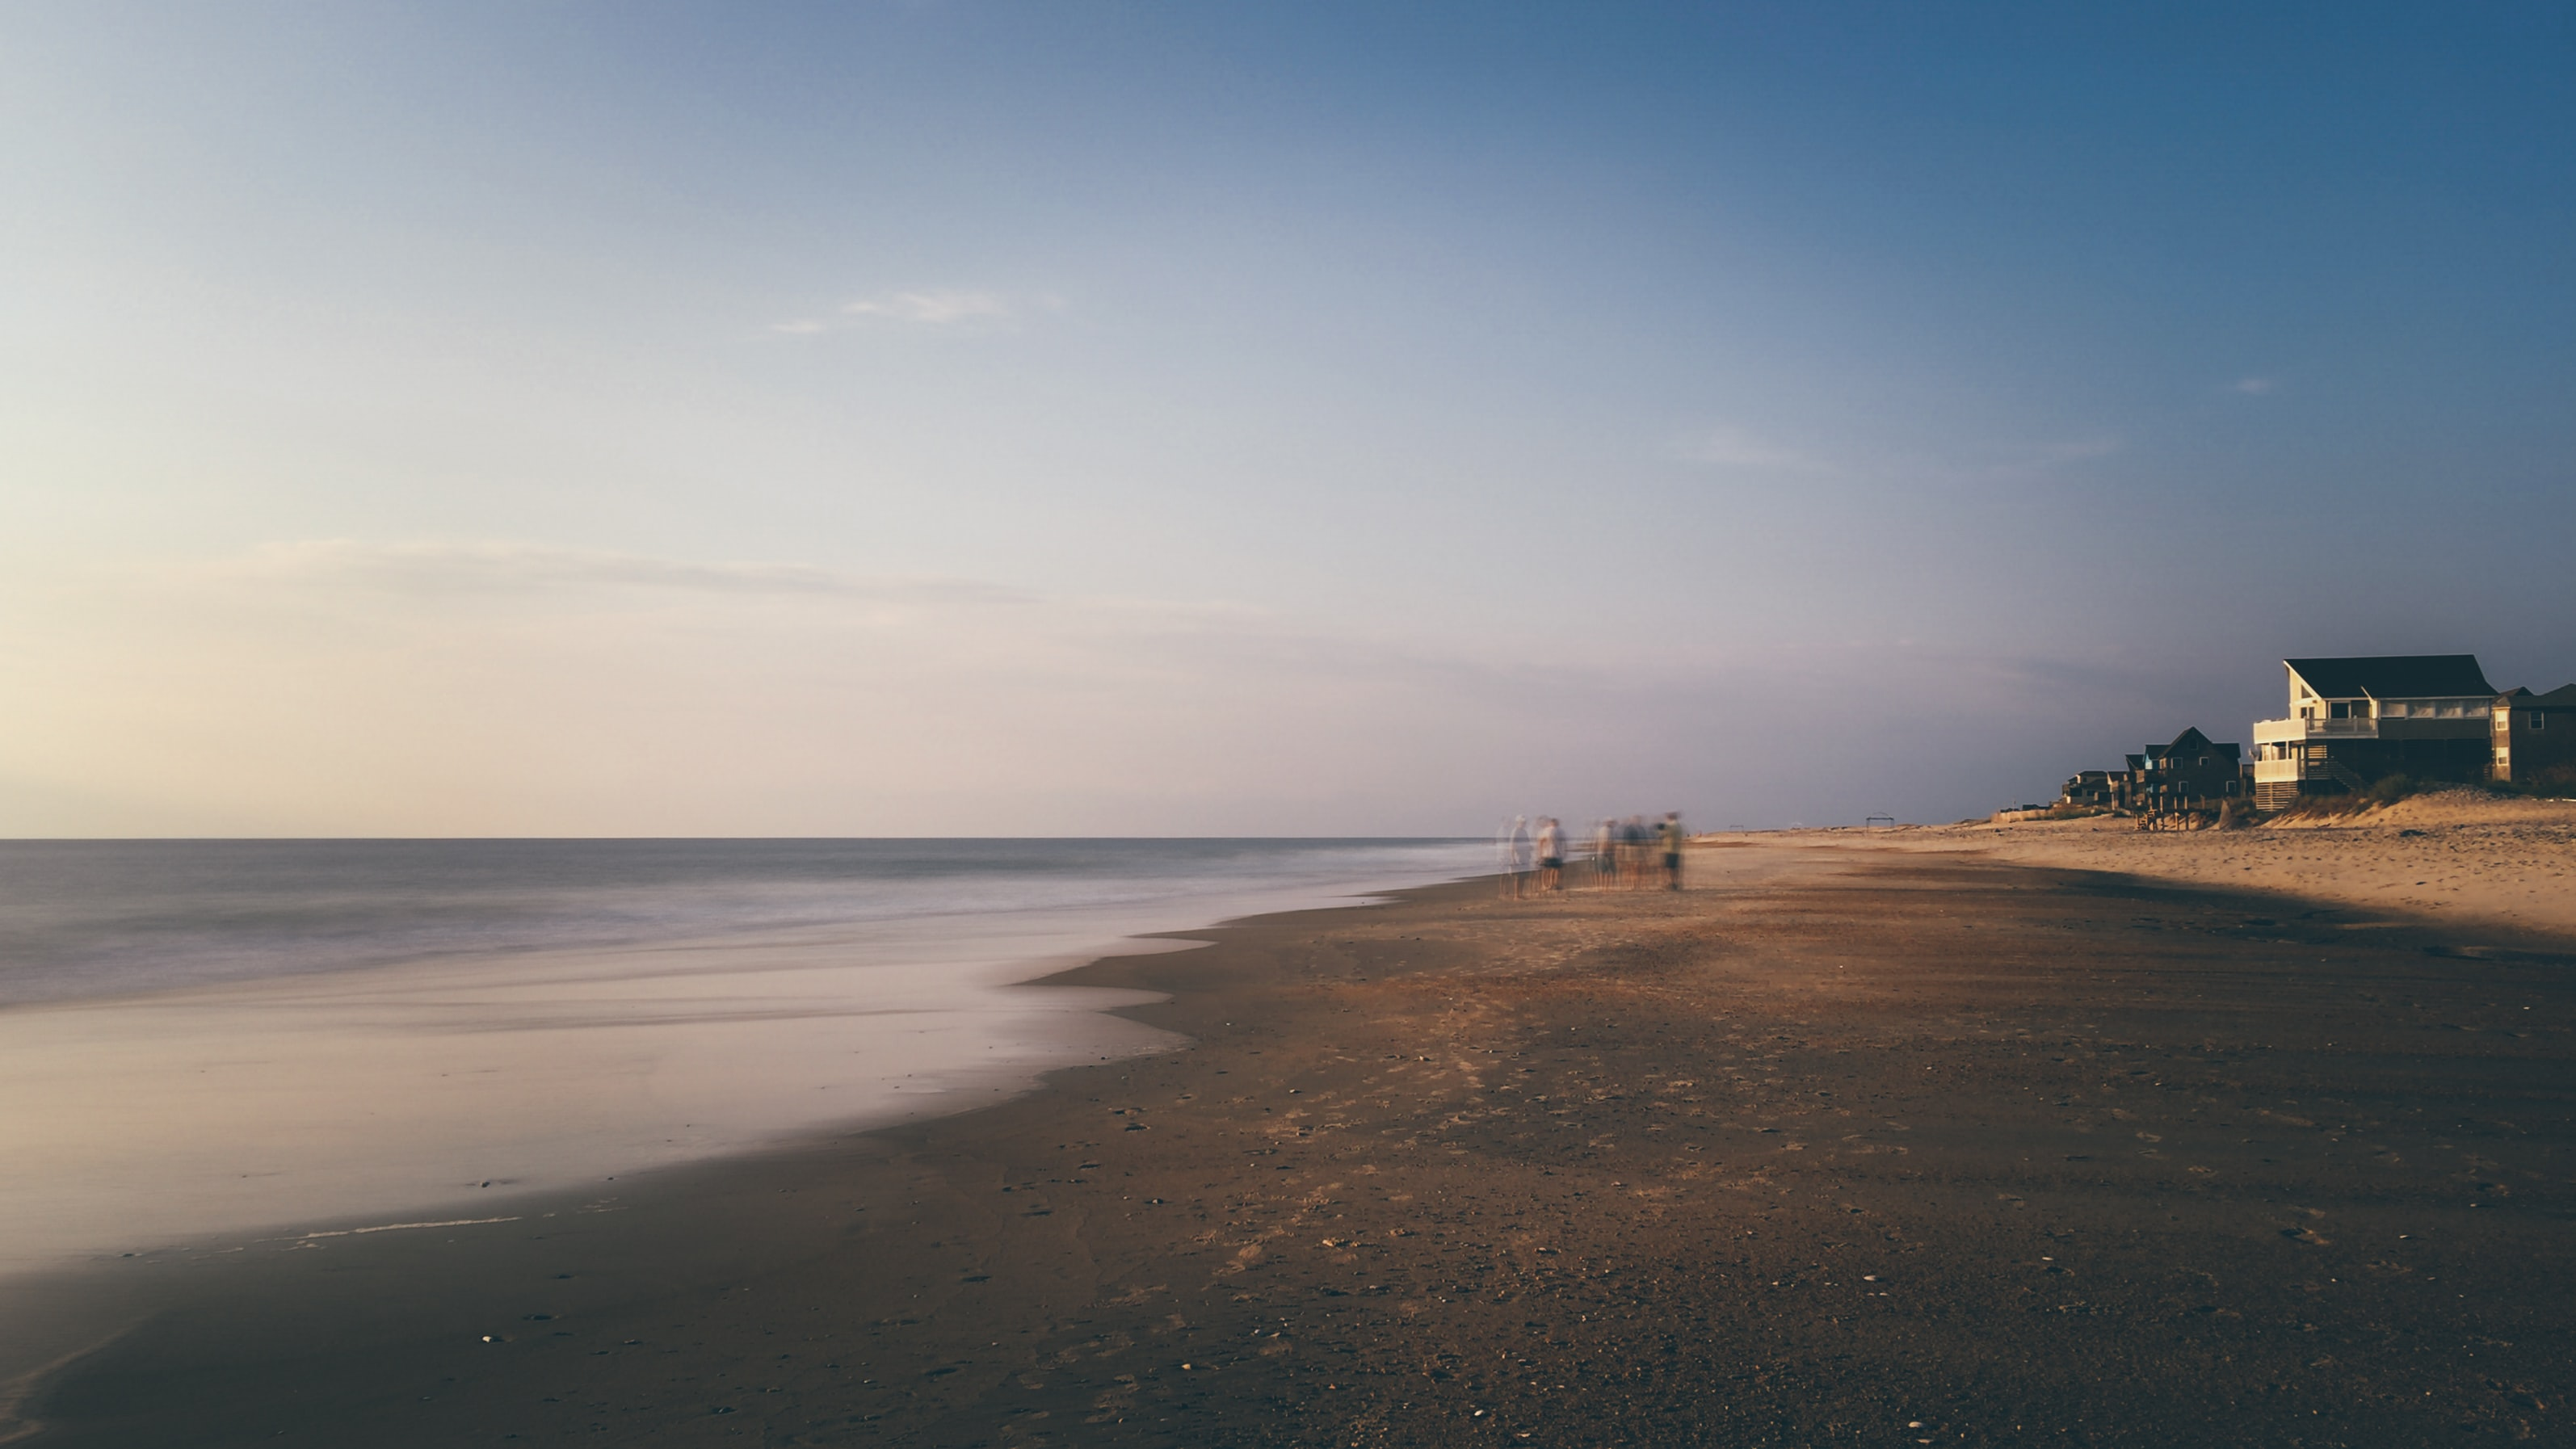 Blurry landscape capture of people doing early during sunrise at a beach in Rodanthe Pier